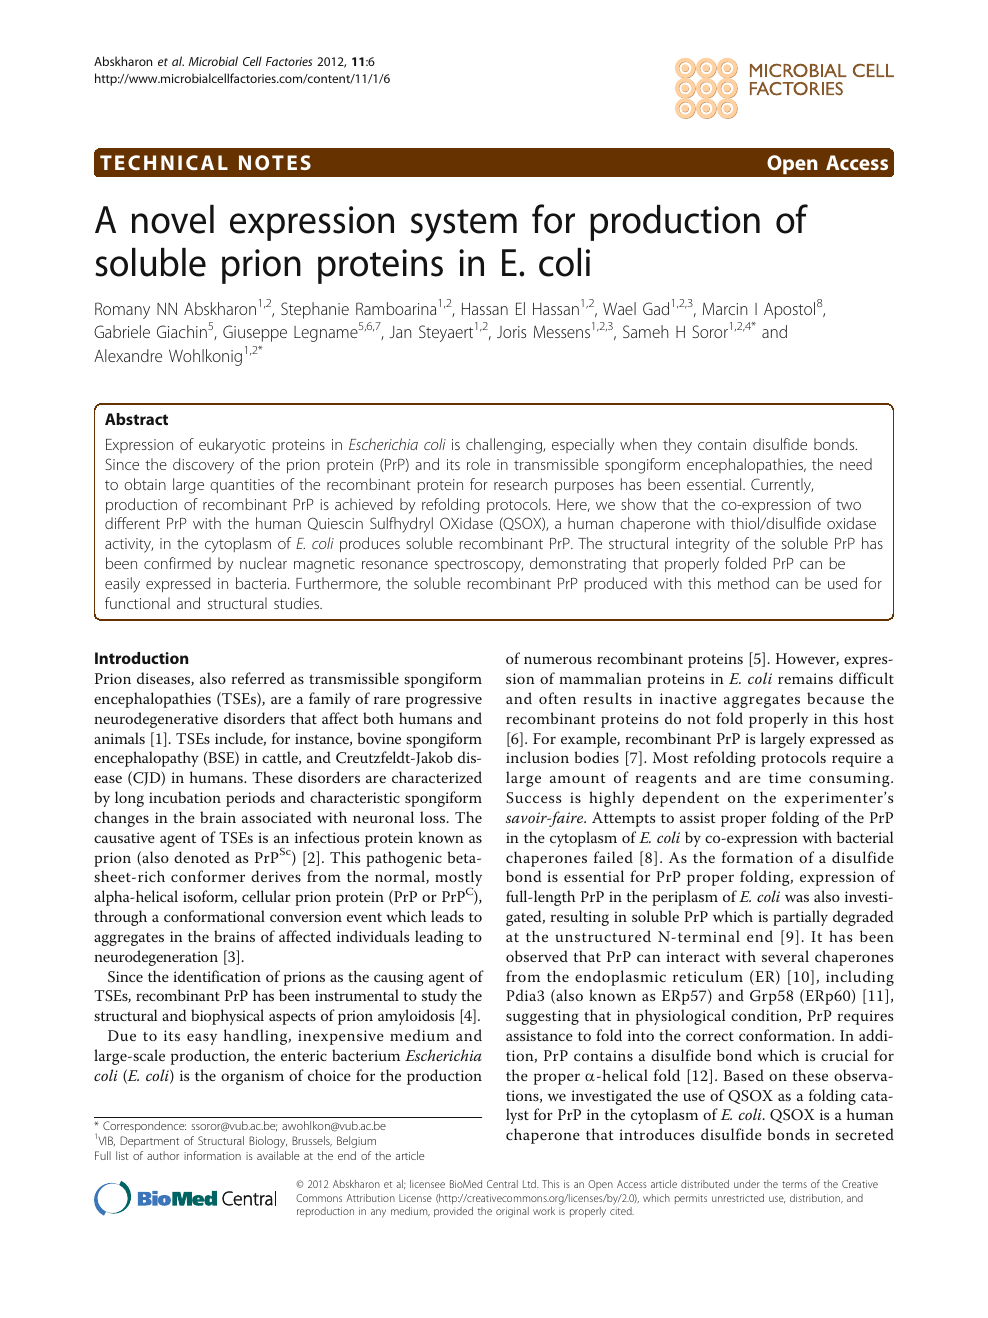 A novel expression system for production of soluble prion